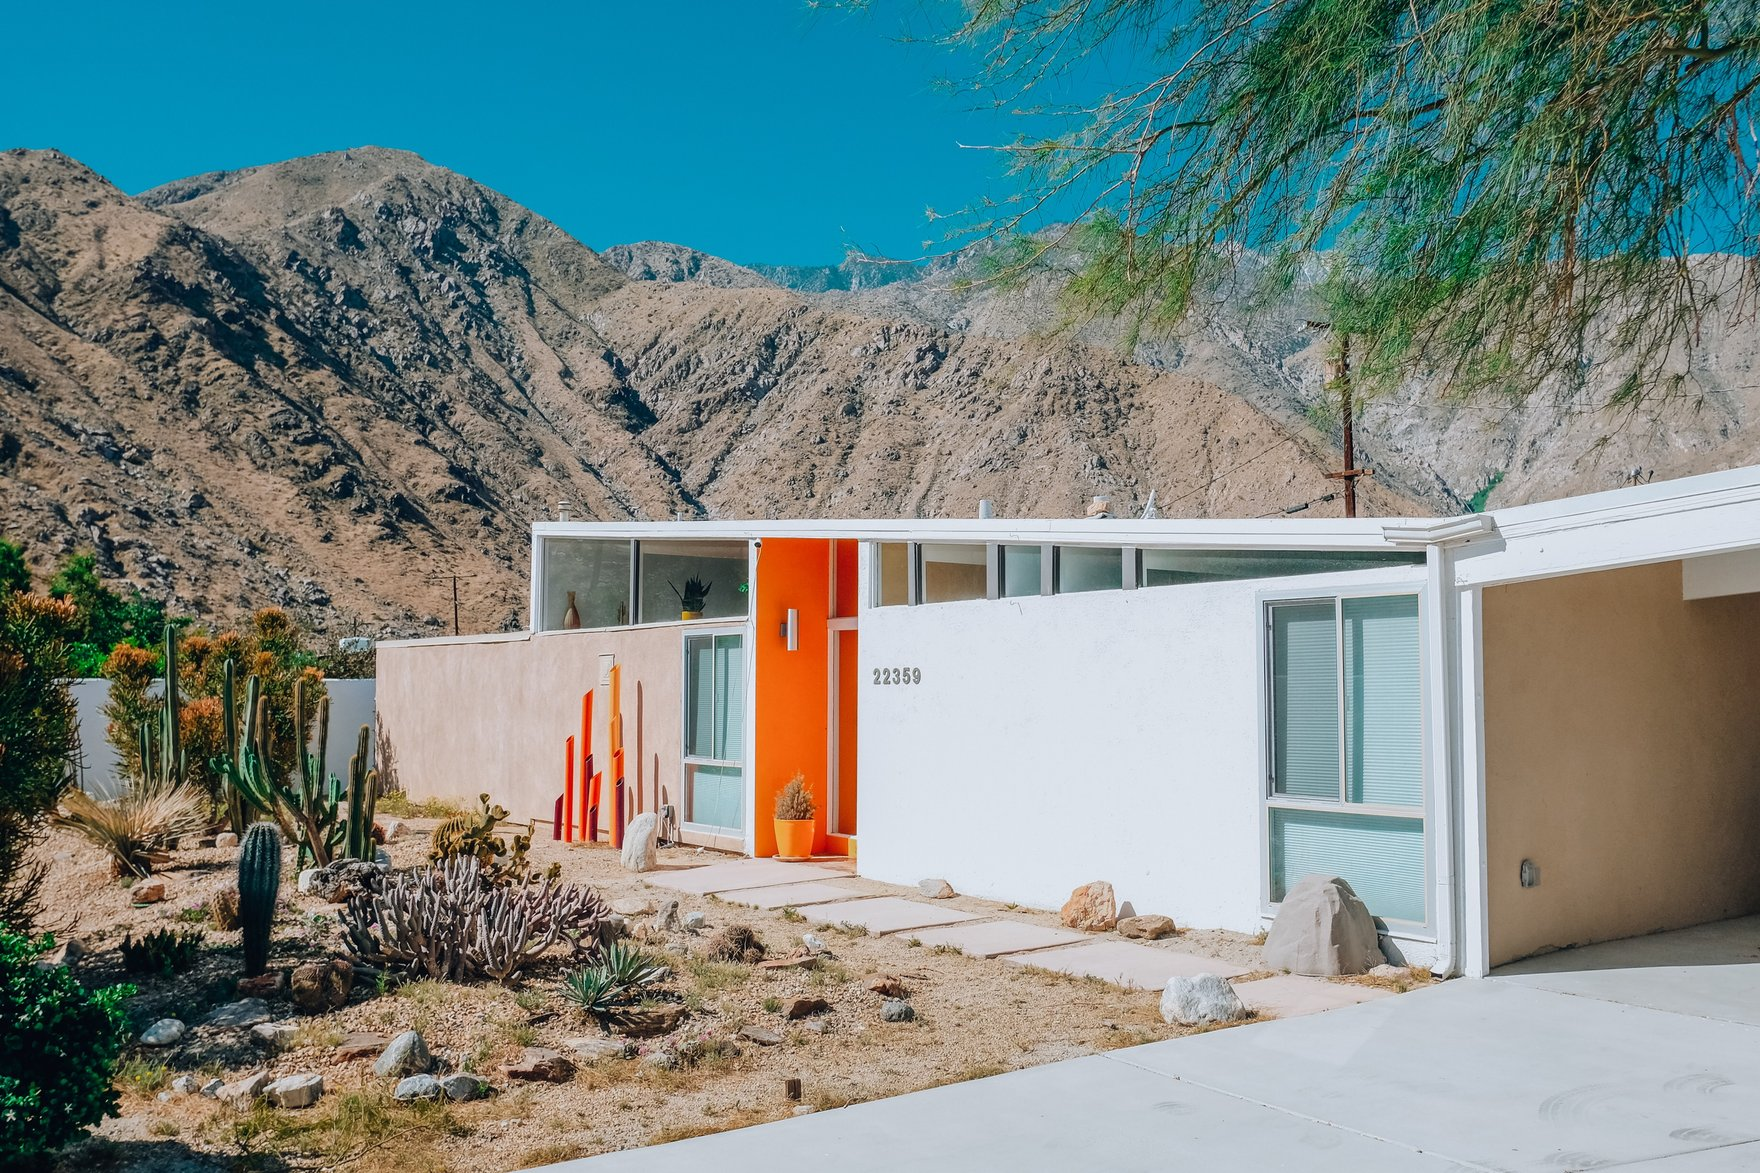 The Desert Poppy - Palm SpringsA stunning, authentic, architectural midcentury ranch house with 8,000 sq feet of cacti and infinite desert views.